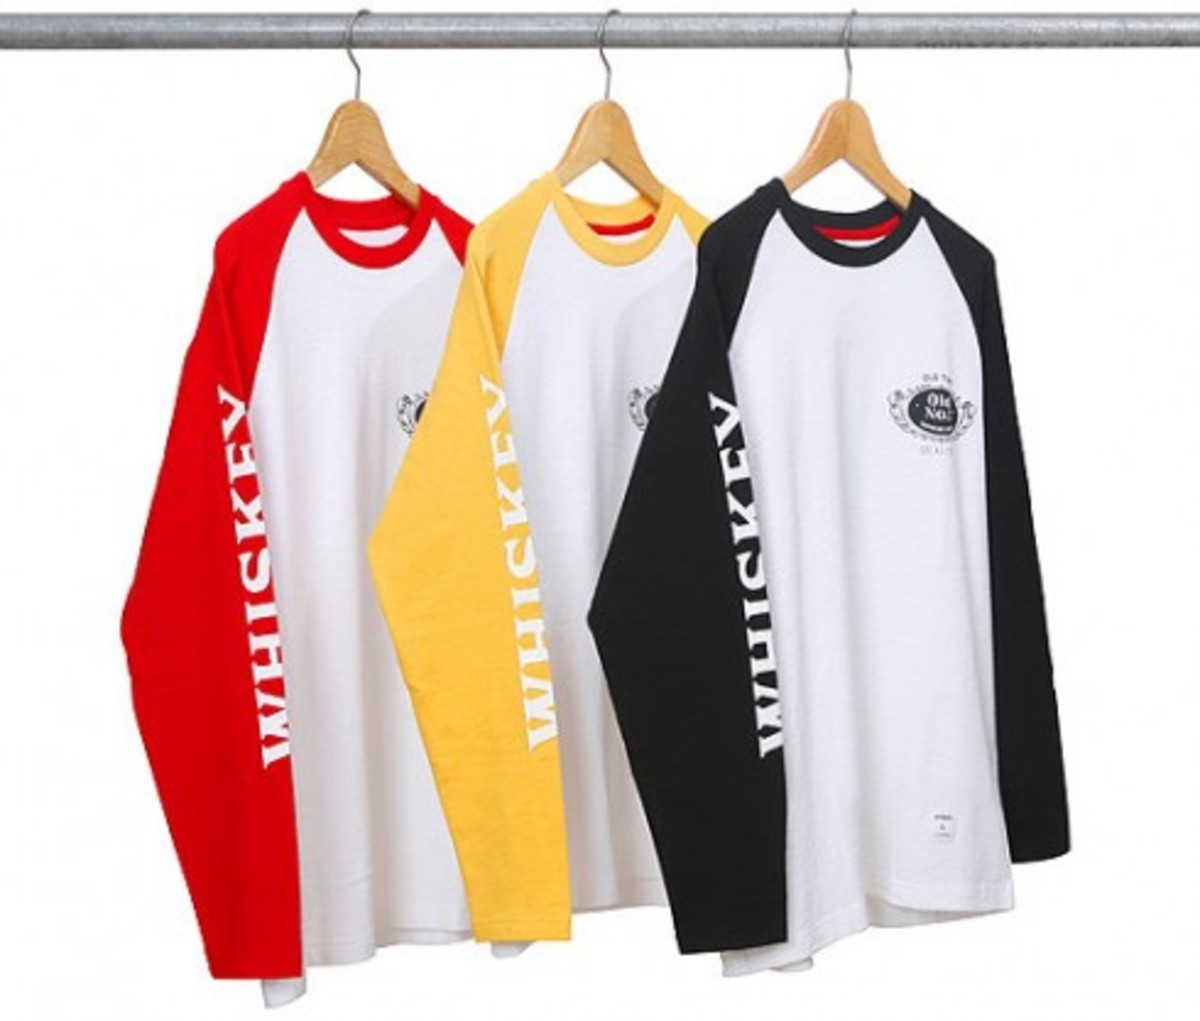 Supreme - Spring 2009 Collection - Clothing - 7